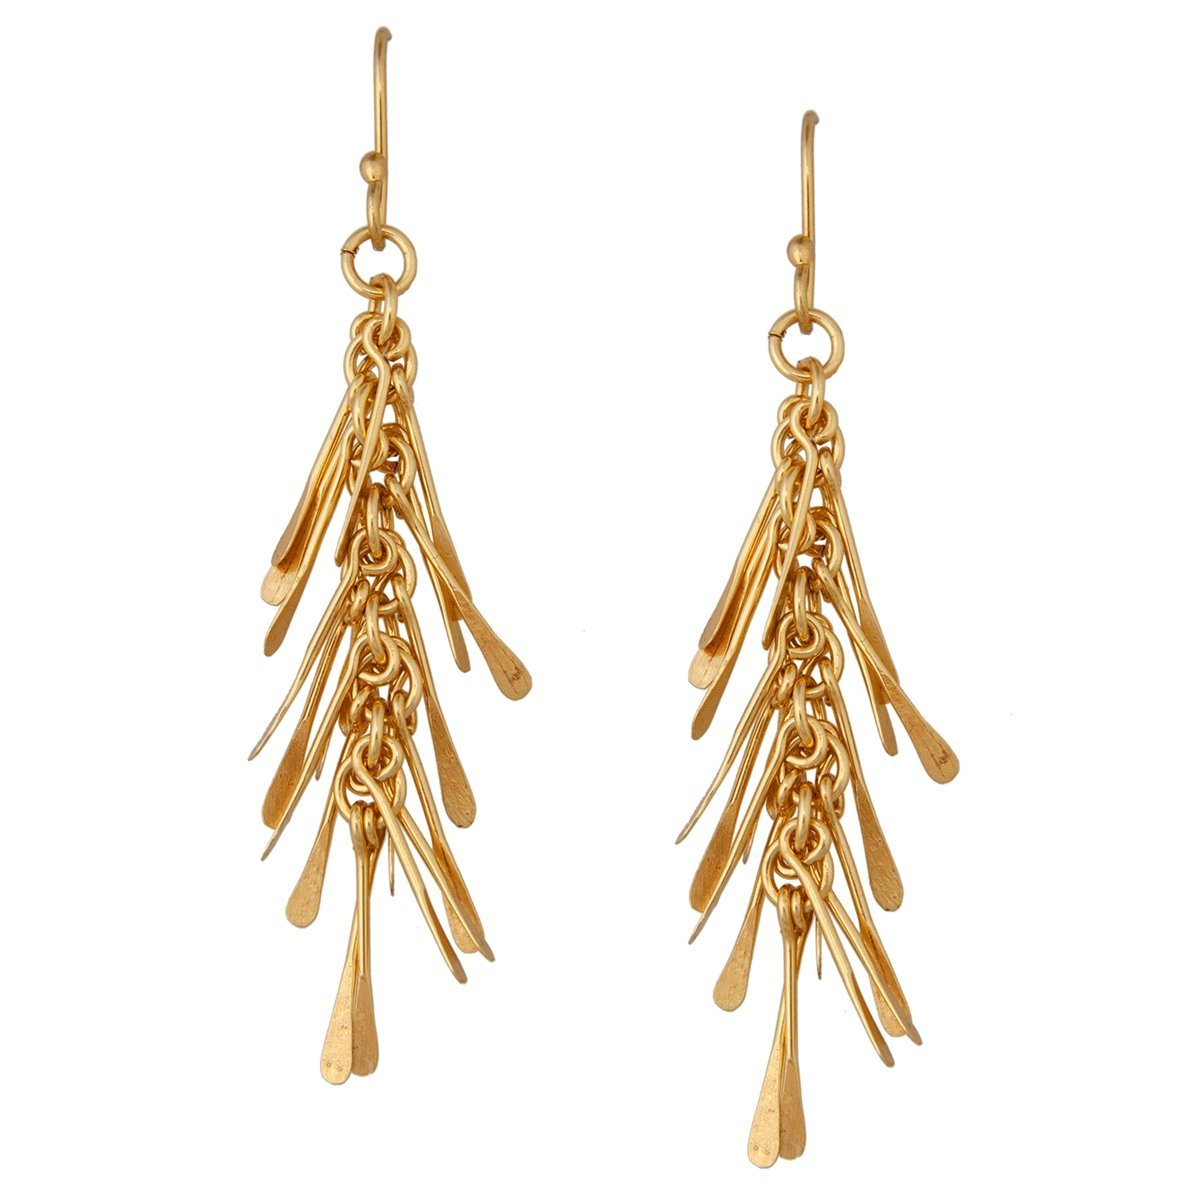 Alchemia Fringe Drop Earrings | Charles Albert Jewelry